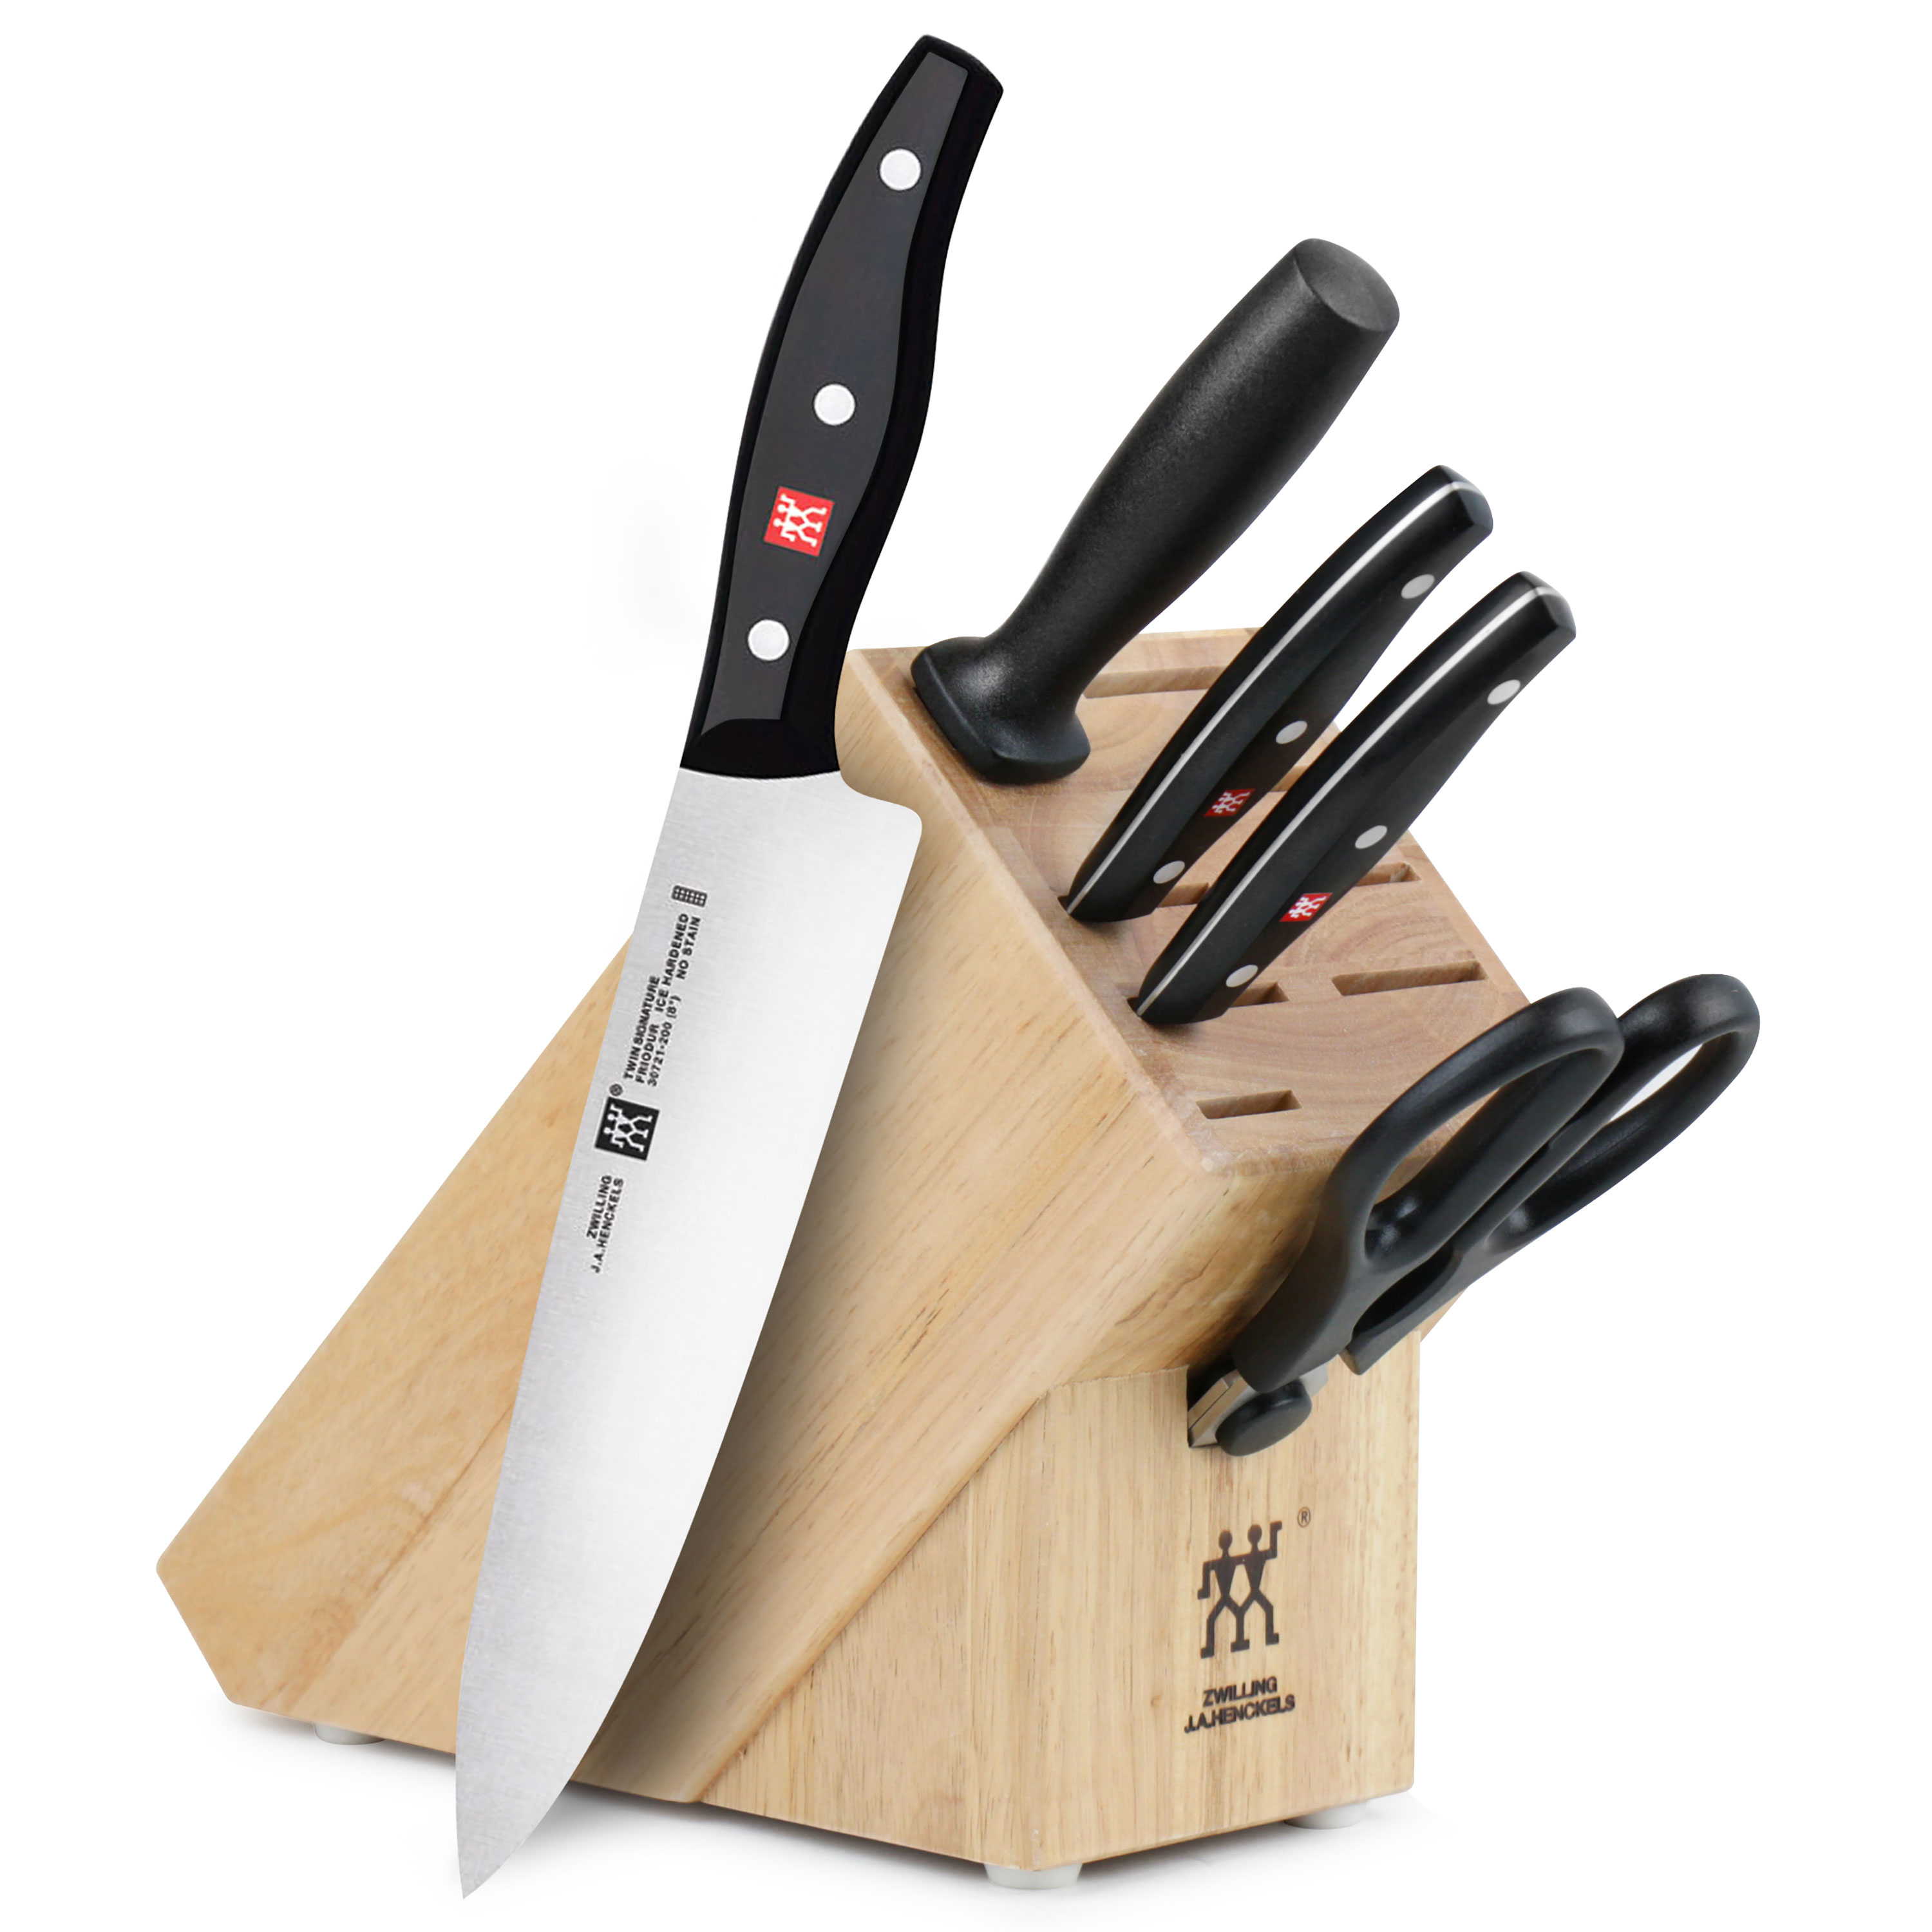 Raclette Tischgrill Zwilling J.a.henckels Zwilling J A Henckels Twin Signature Knife Block Set 6